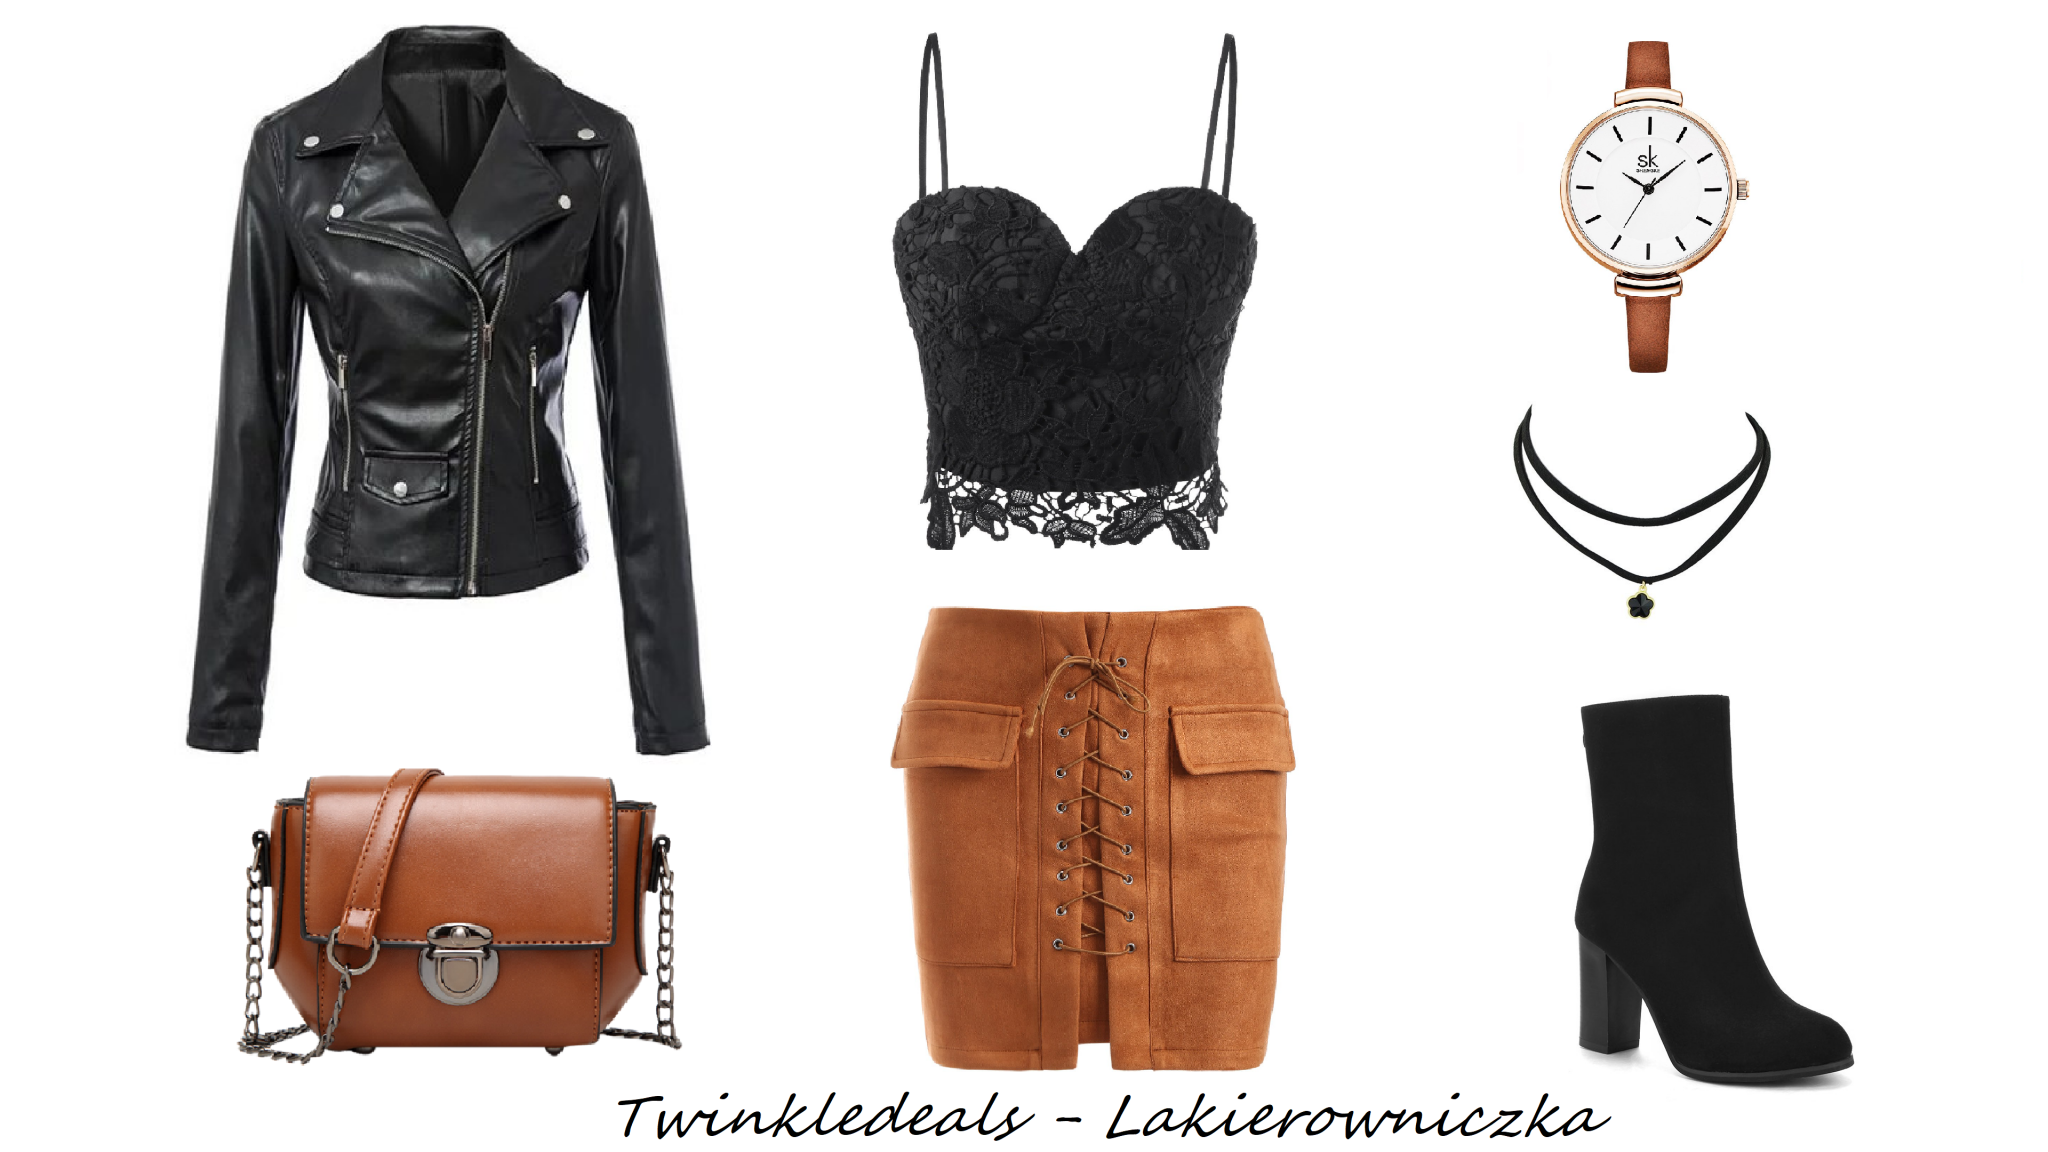 Twinkledeals-wishlist-outfit-atumn-leather-jacket-top-skirt-carmel-brown-black-boots-bag-small-bag-watch-choker-Twinkledeals wishlist